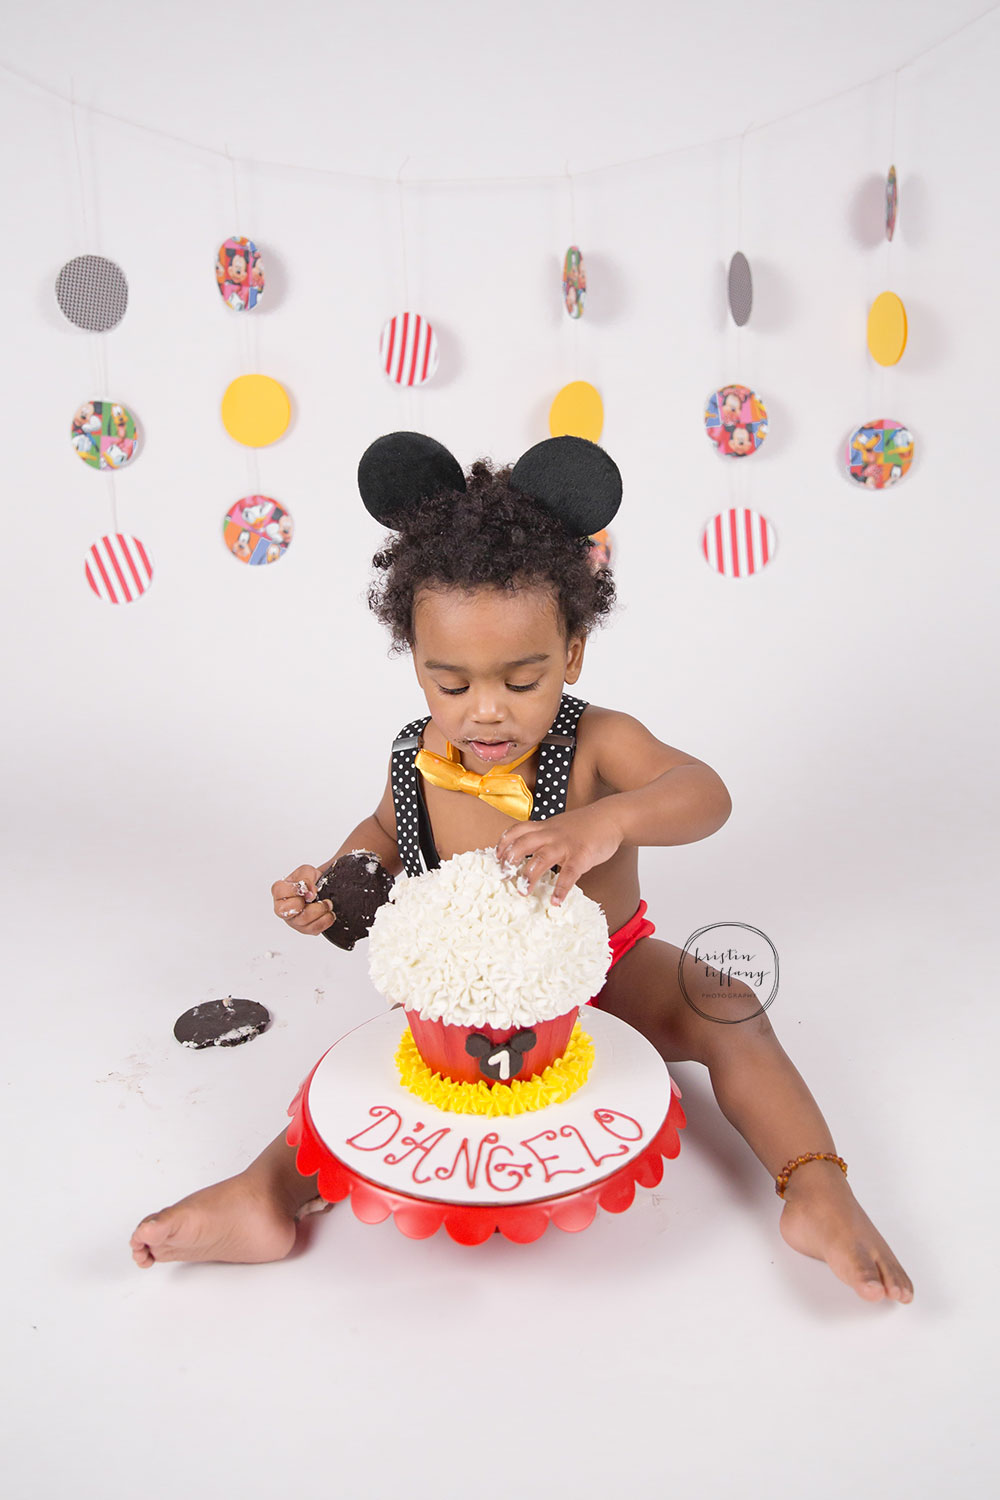 a photo from a Mickey Mouse themed cake smash